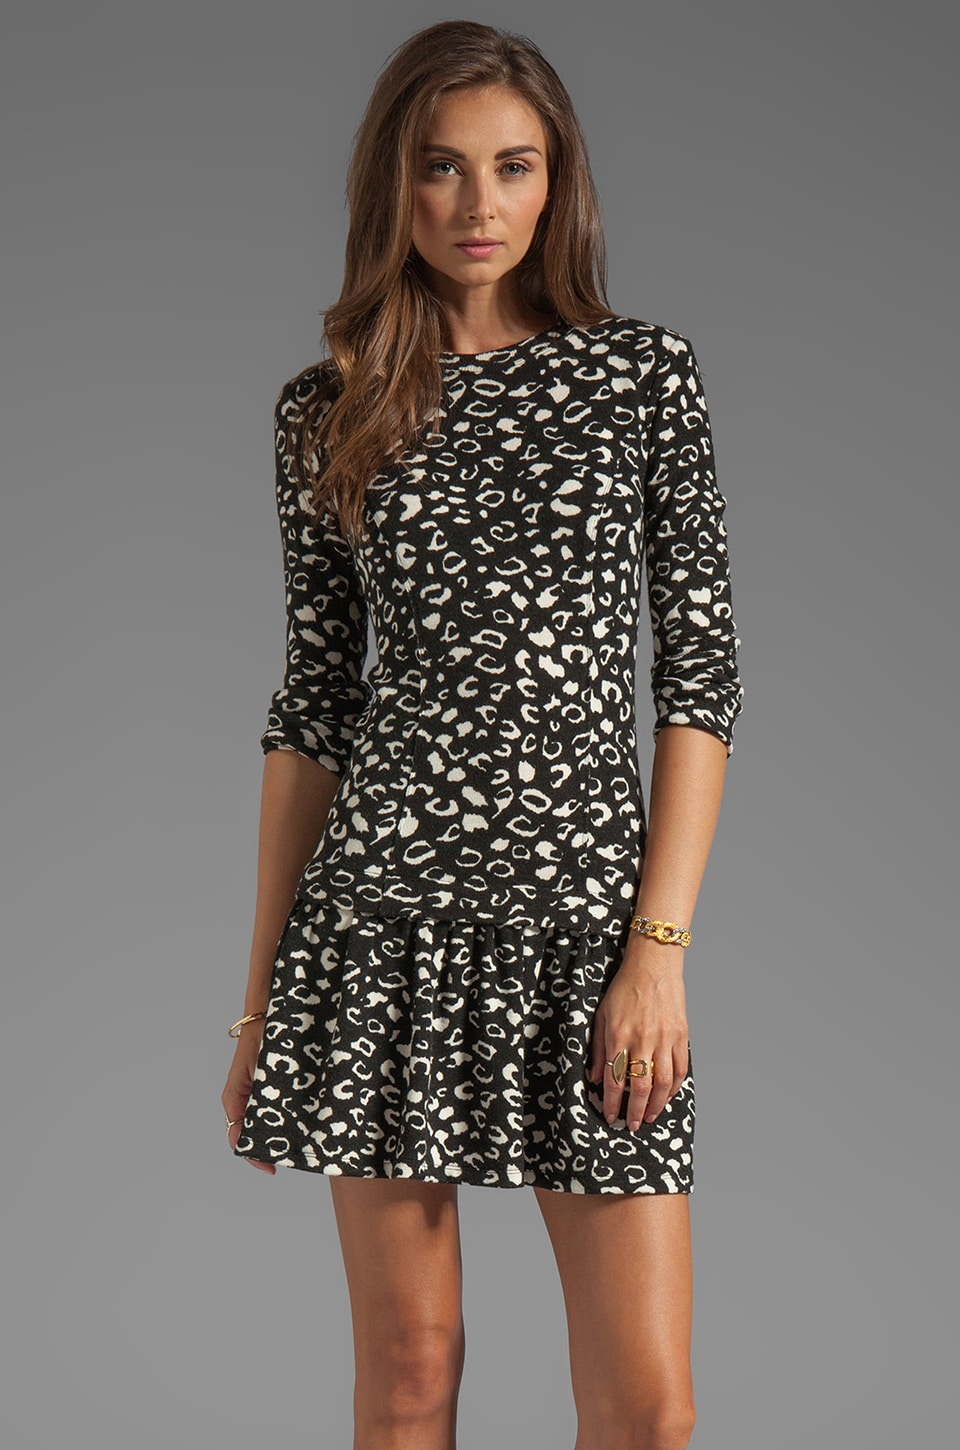 Dolce Vita Meko Leopard Knit Dot Dress in Black Print